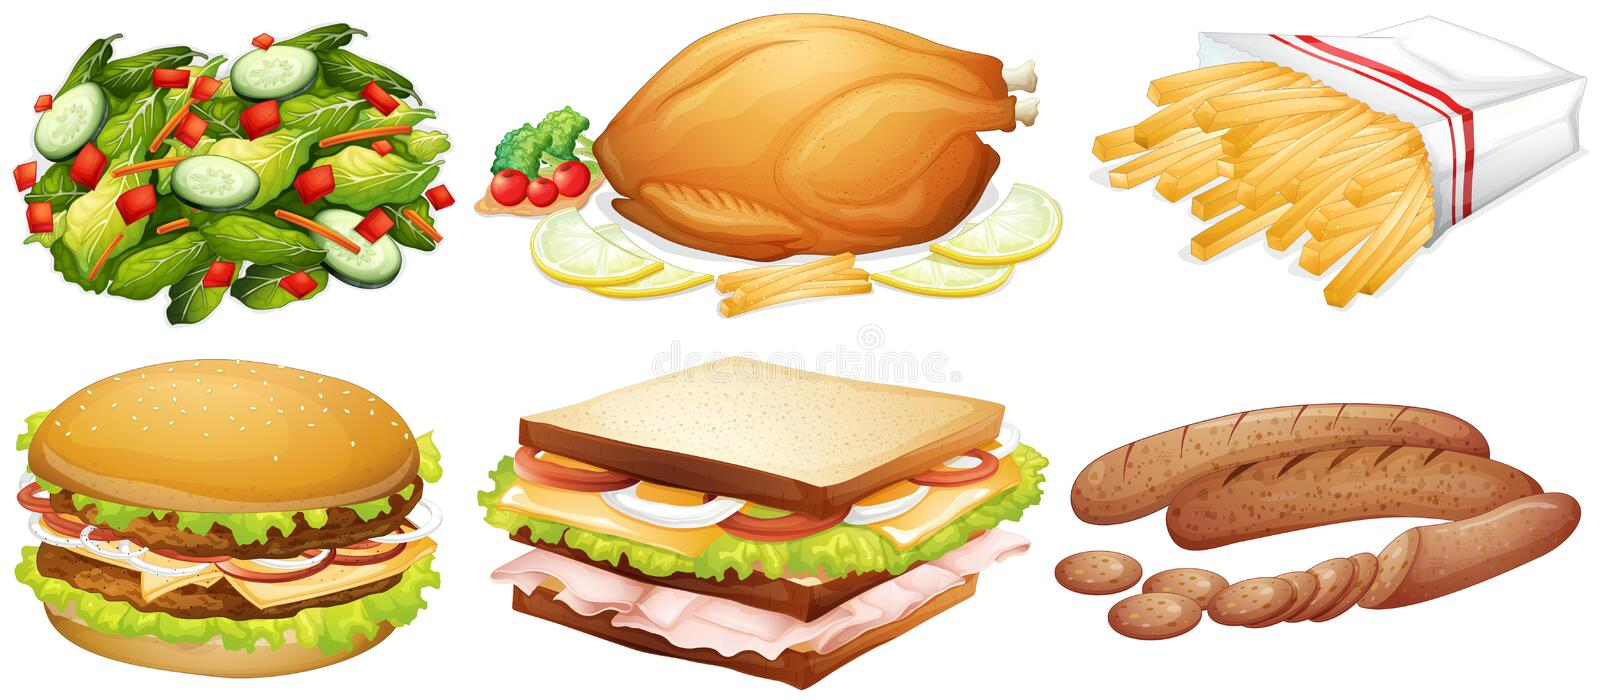 Many kinds of food royalty free illustration